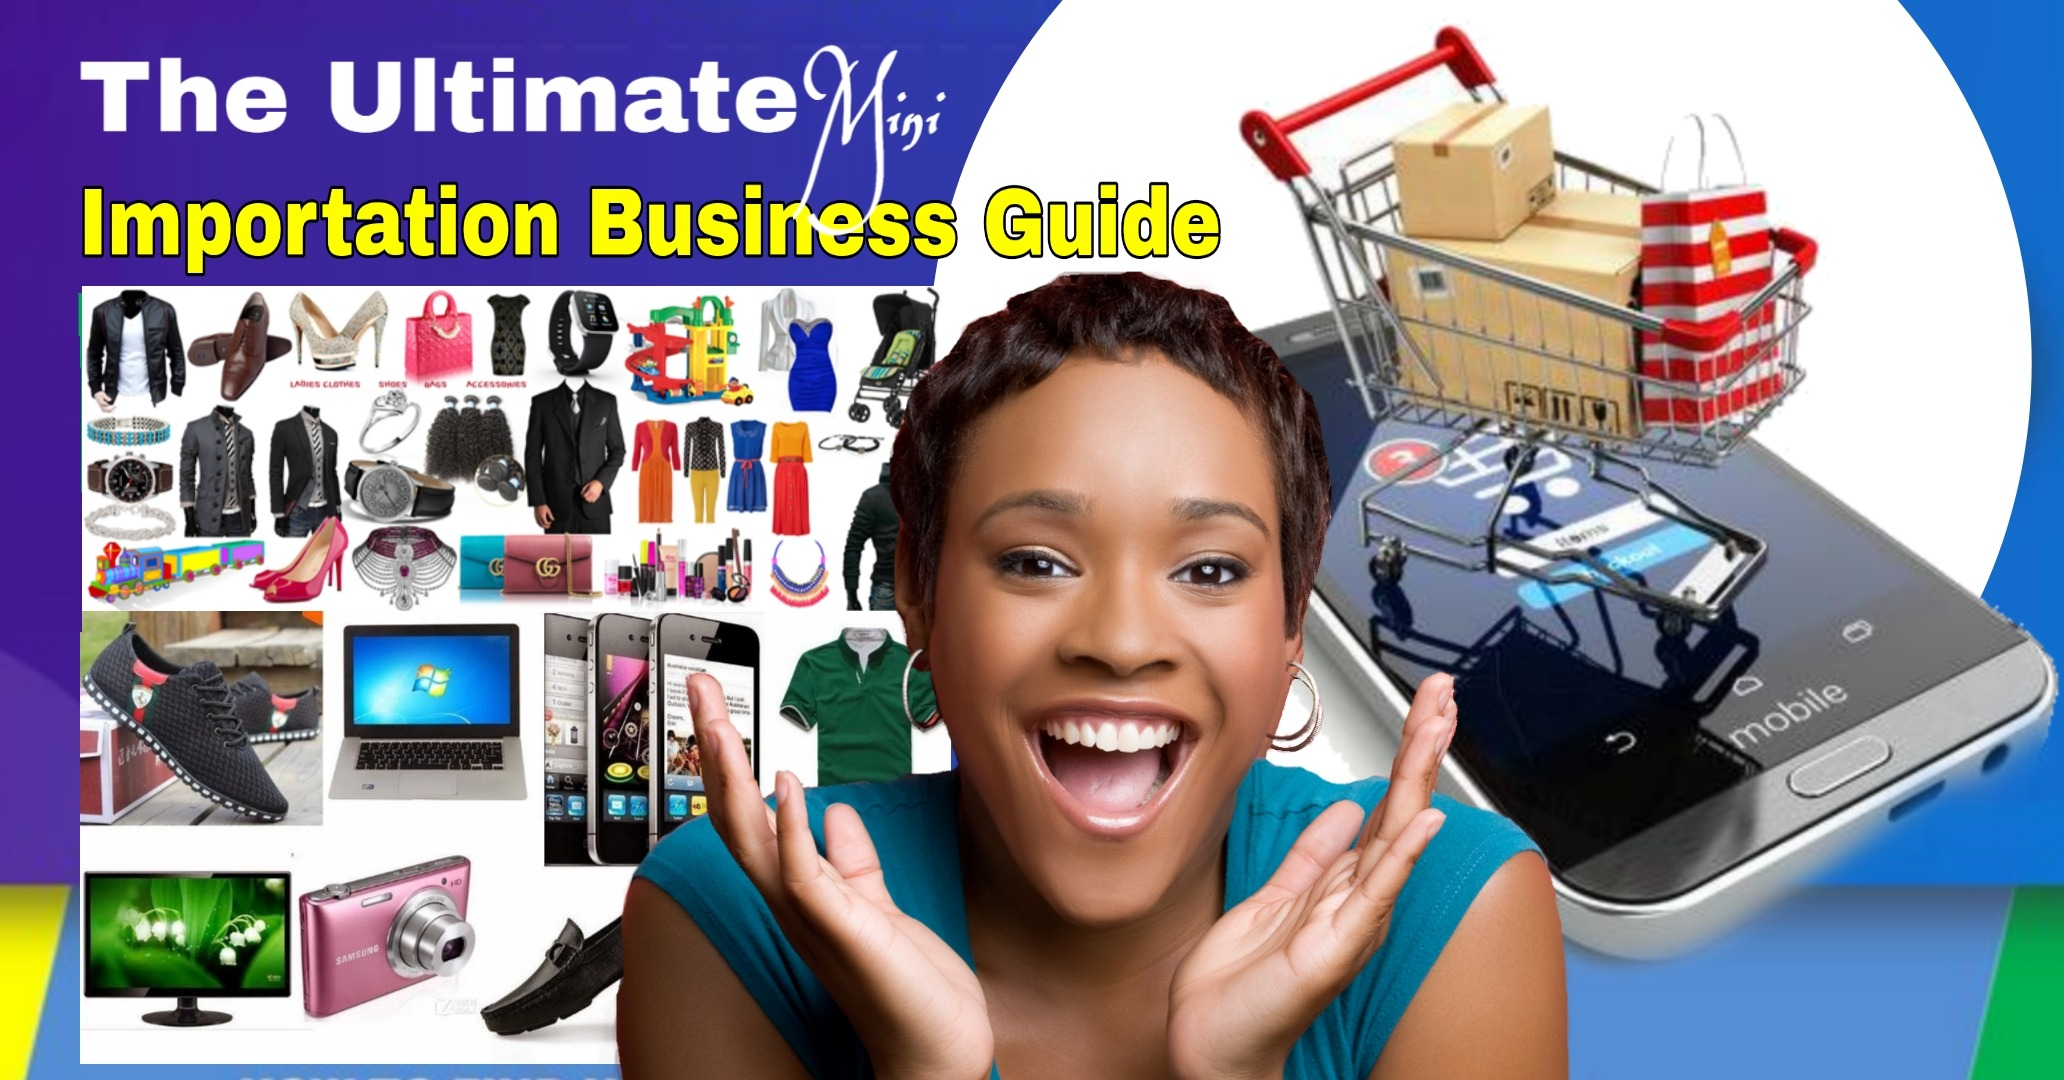 Ultimate (1688) Mini Importation Business Guide